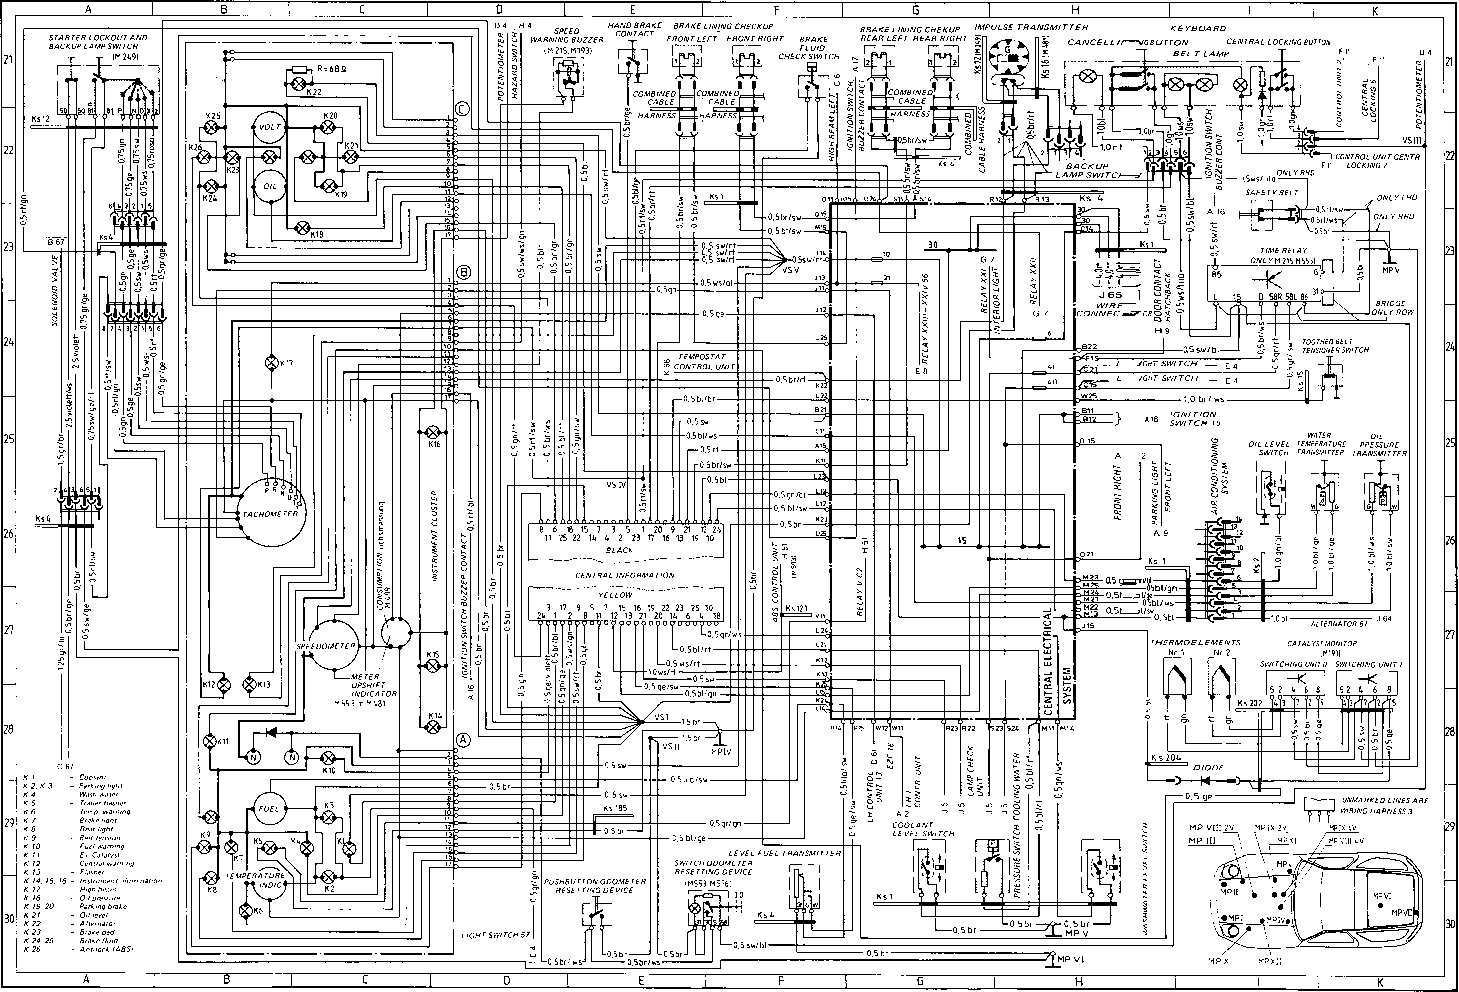 wiring diagram type 928 s model 86 page porsche 928 repair rh porscherepair us porsche 928 s4 wiring diagram porsche 928 s4 wiring diagram